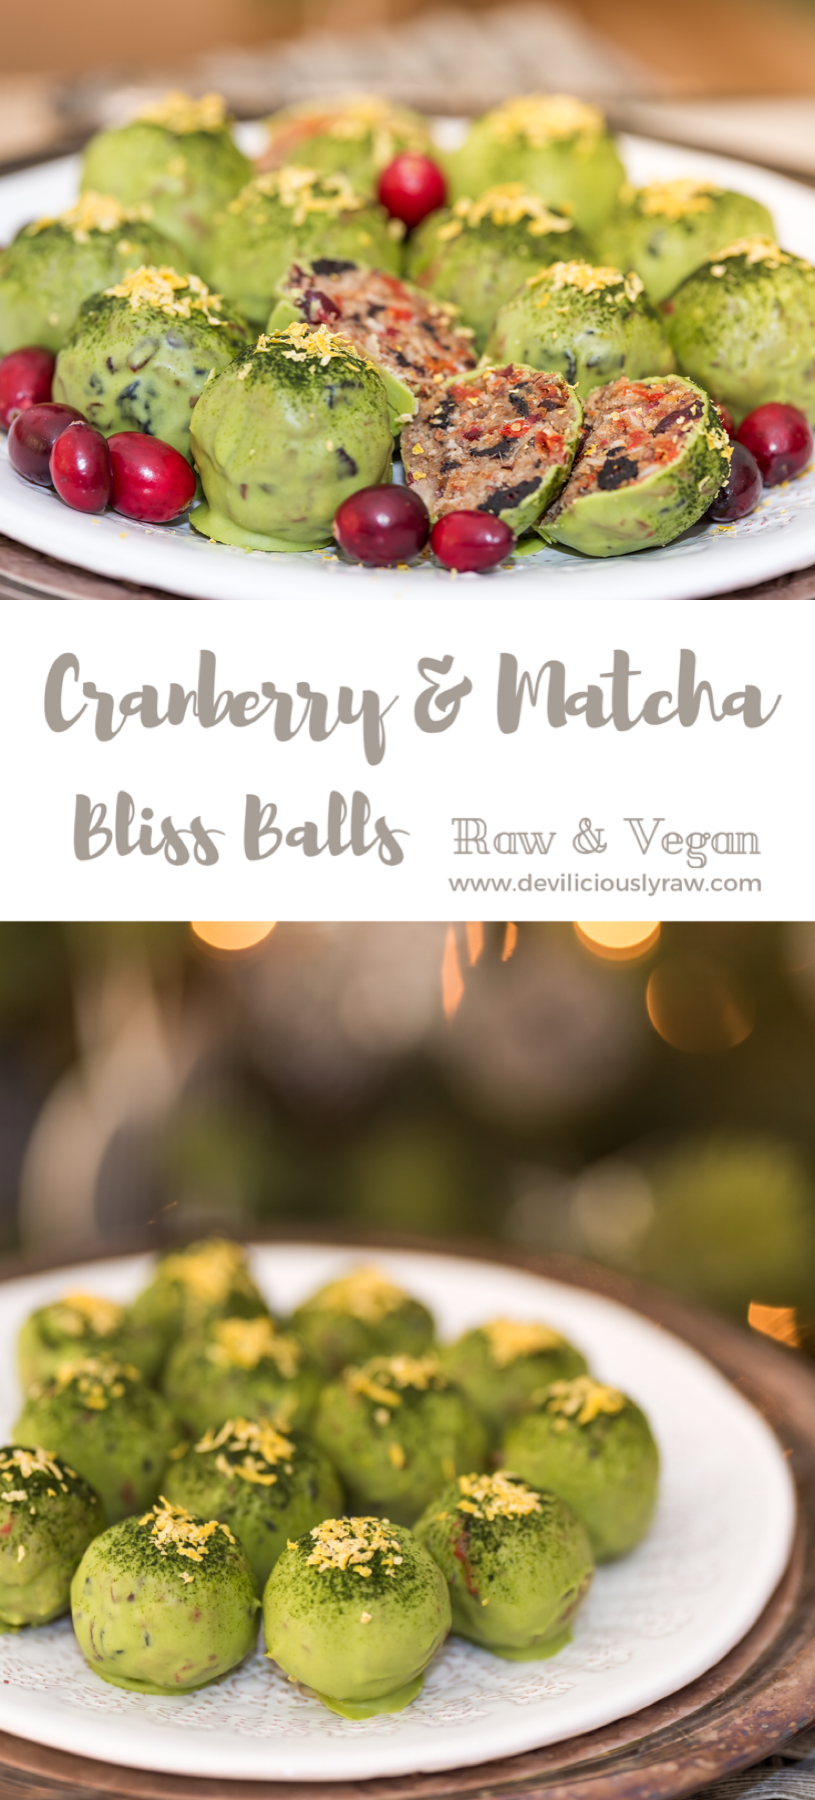 Very Berry Matcha Bliss Balls